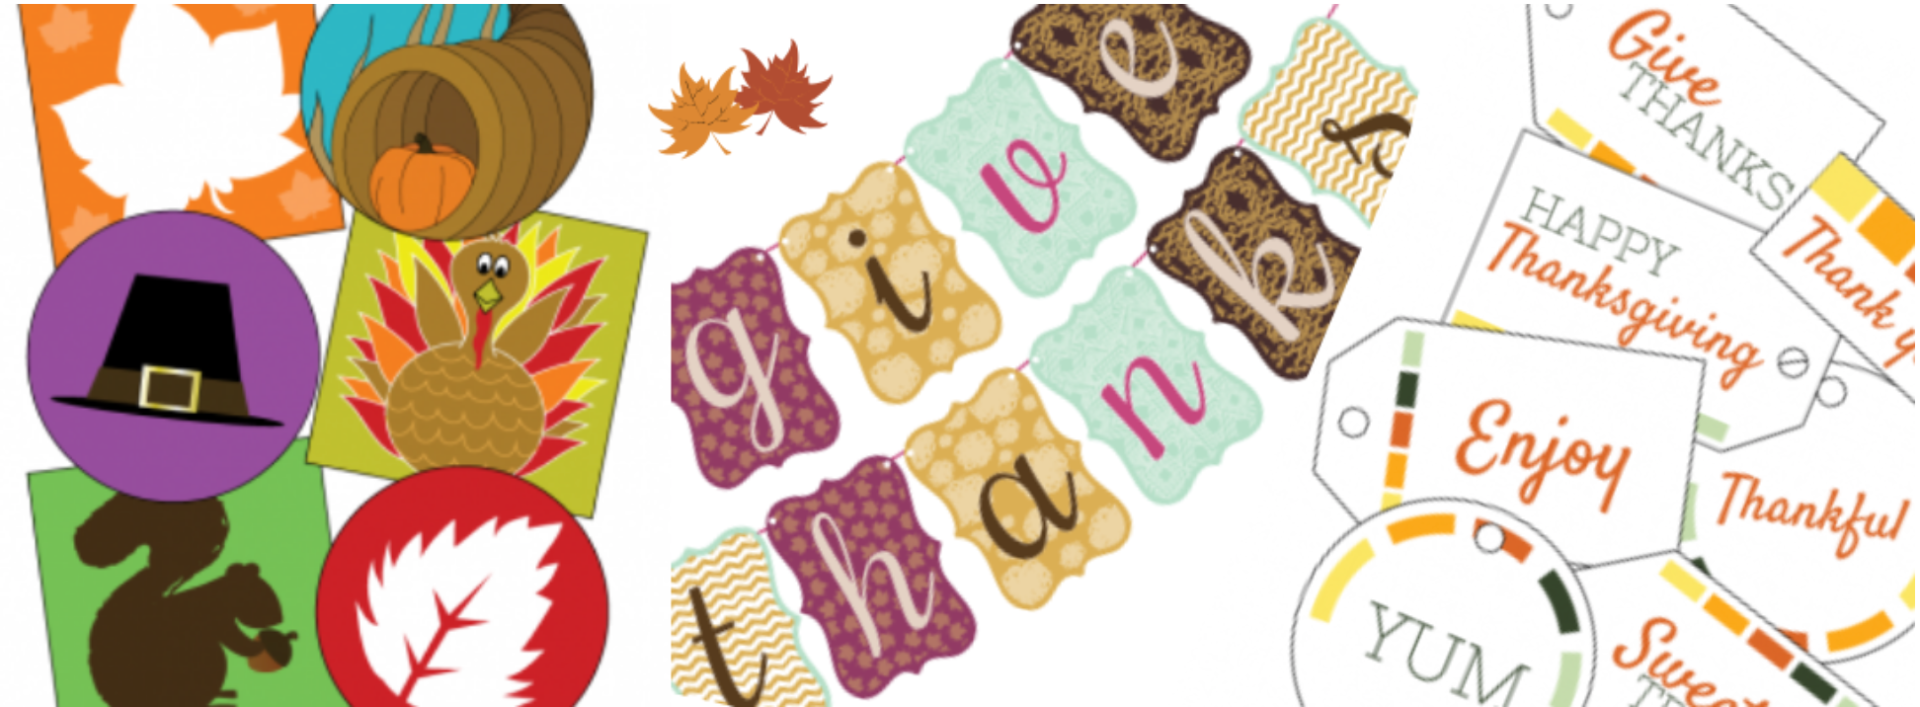 16 Free Thanksgiving Printables